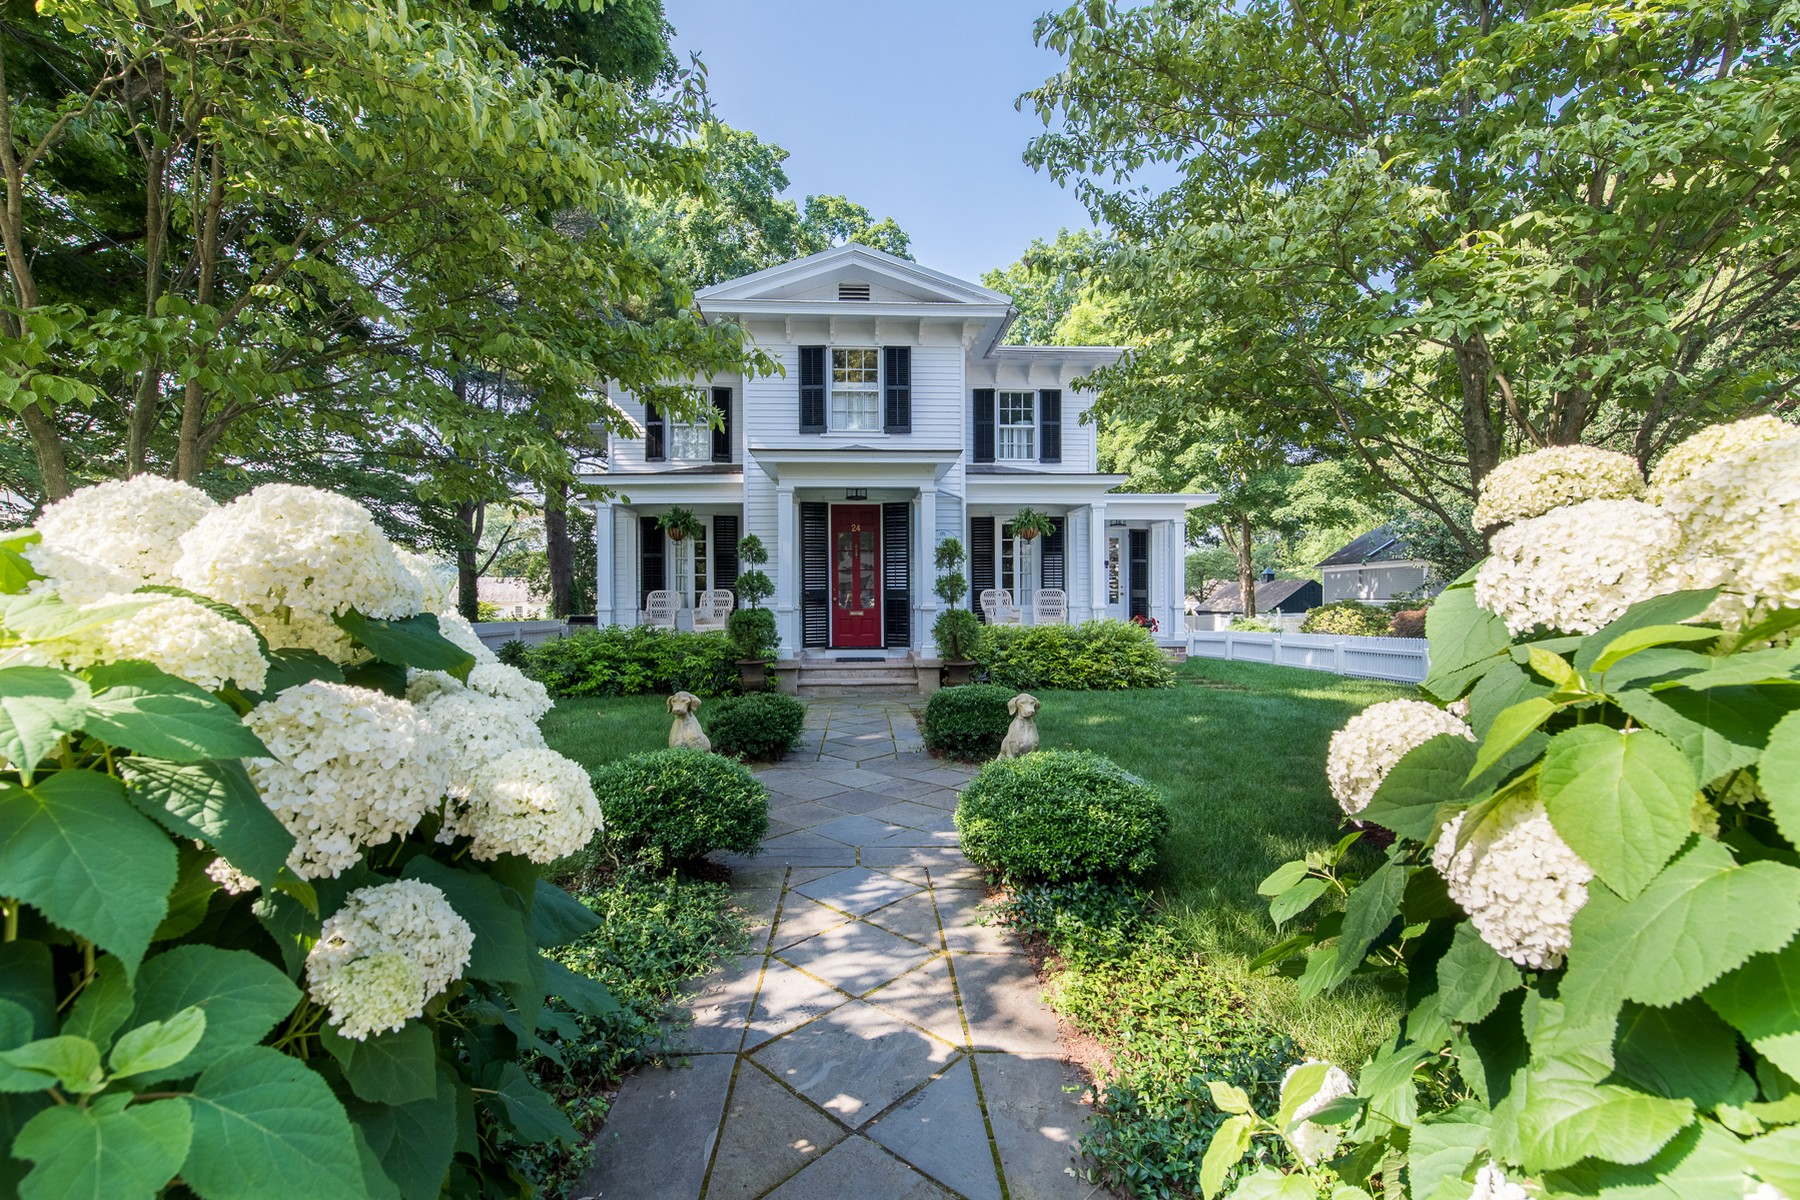 Single Family Homes のために 売買 アット Village Waterfront Landmark 24 Main Street, Essex, コネチカット 06426 アメリカ